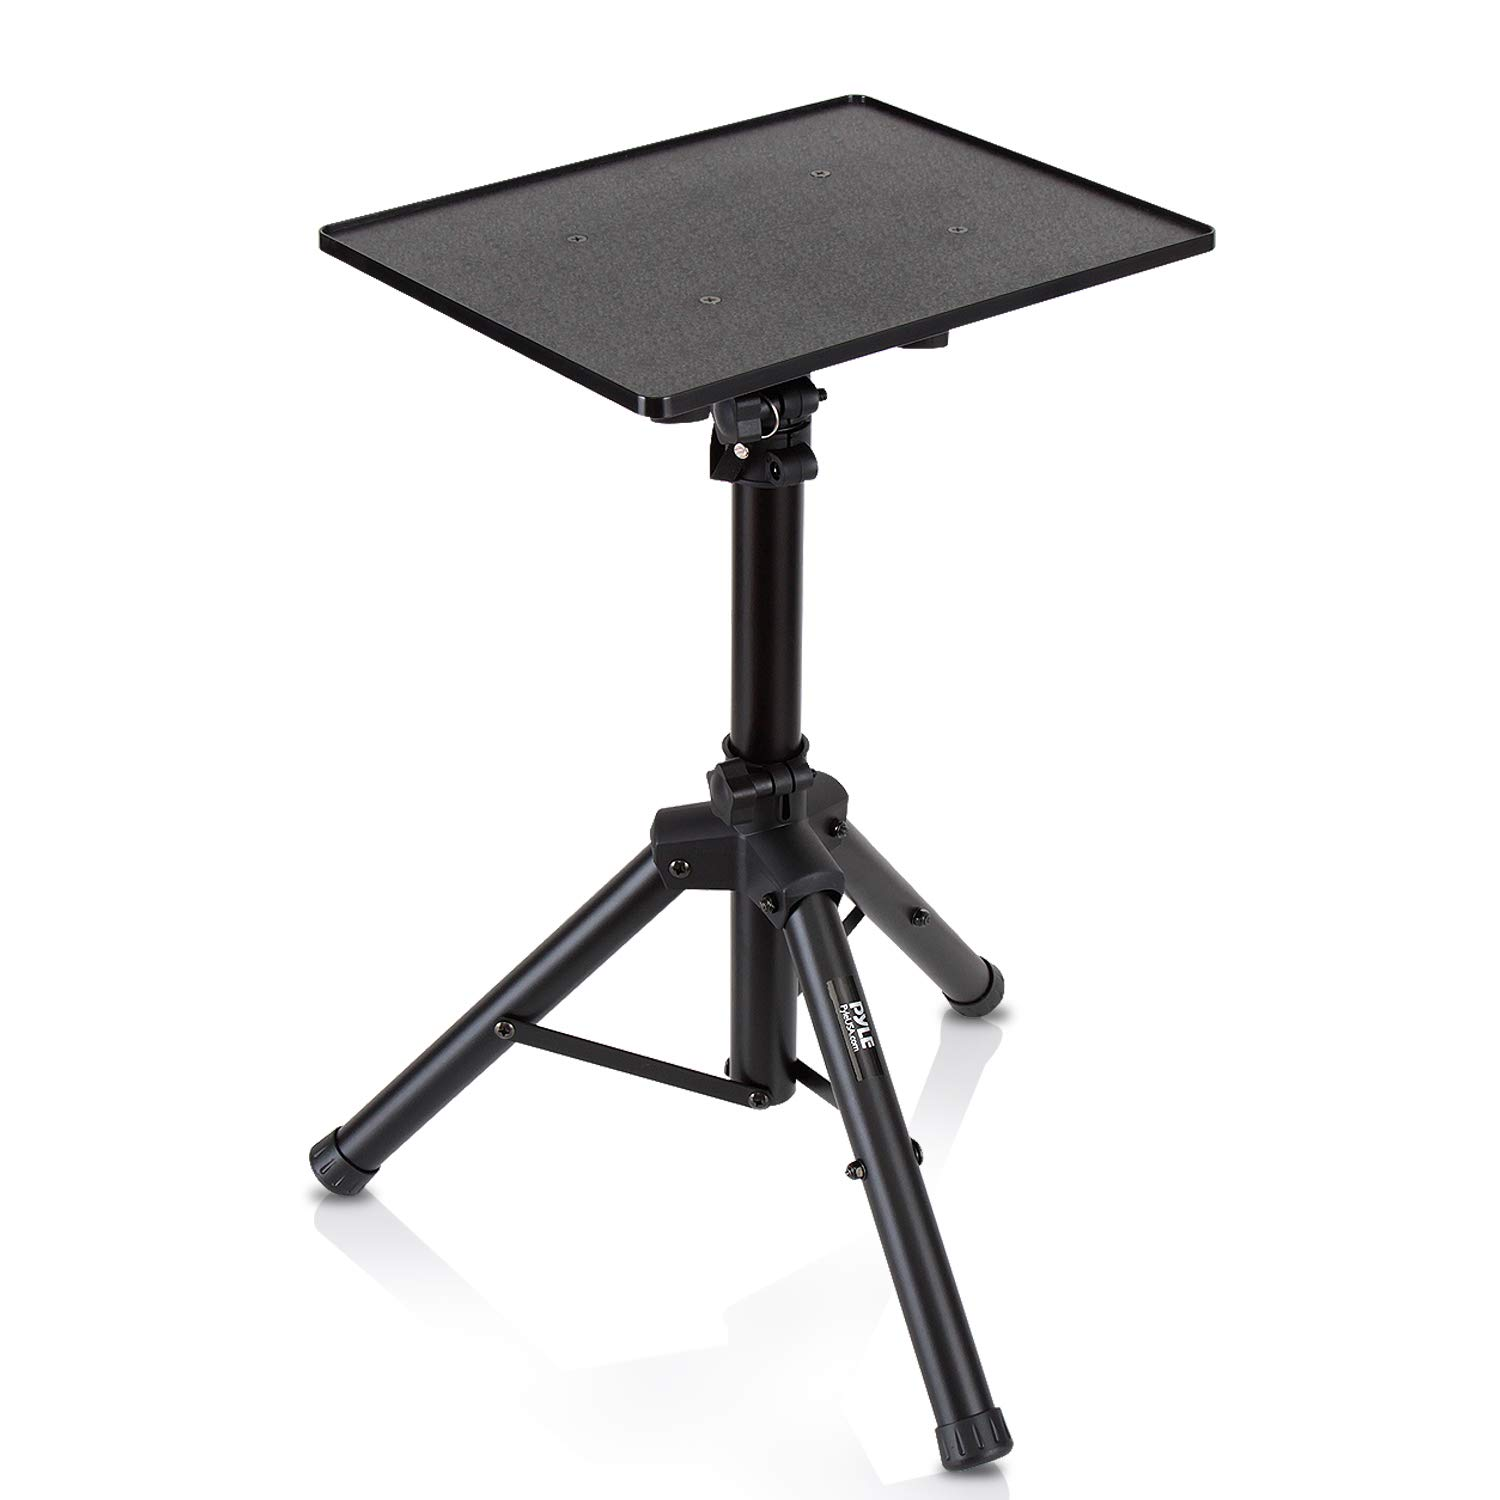 Universal Laptop Projector Tripod Stand - Computer, Book, DJ Equipment Holder Mount Height Adjustable Up to 35 Inches w/ 14'' x 11'' Plate Size - Perfect for Stage or Studio Use - PylePro PLPTS2 Sound Around